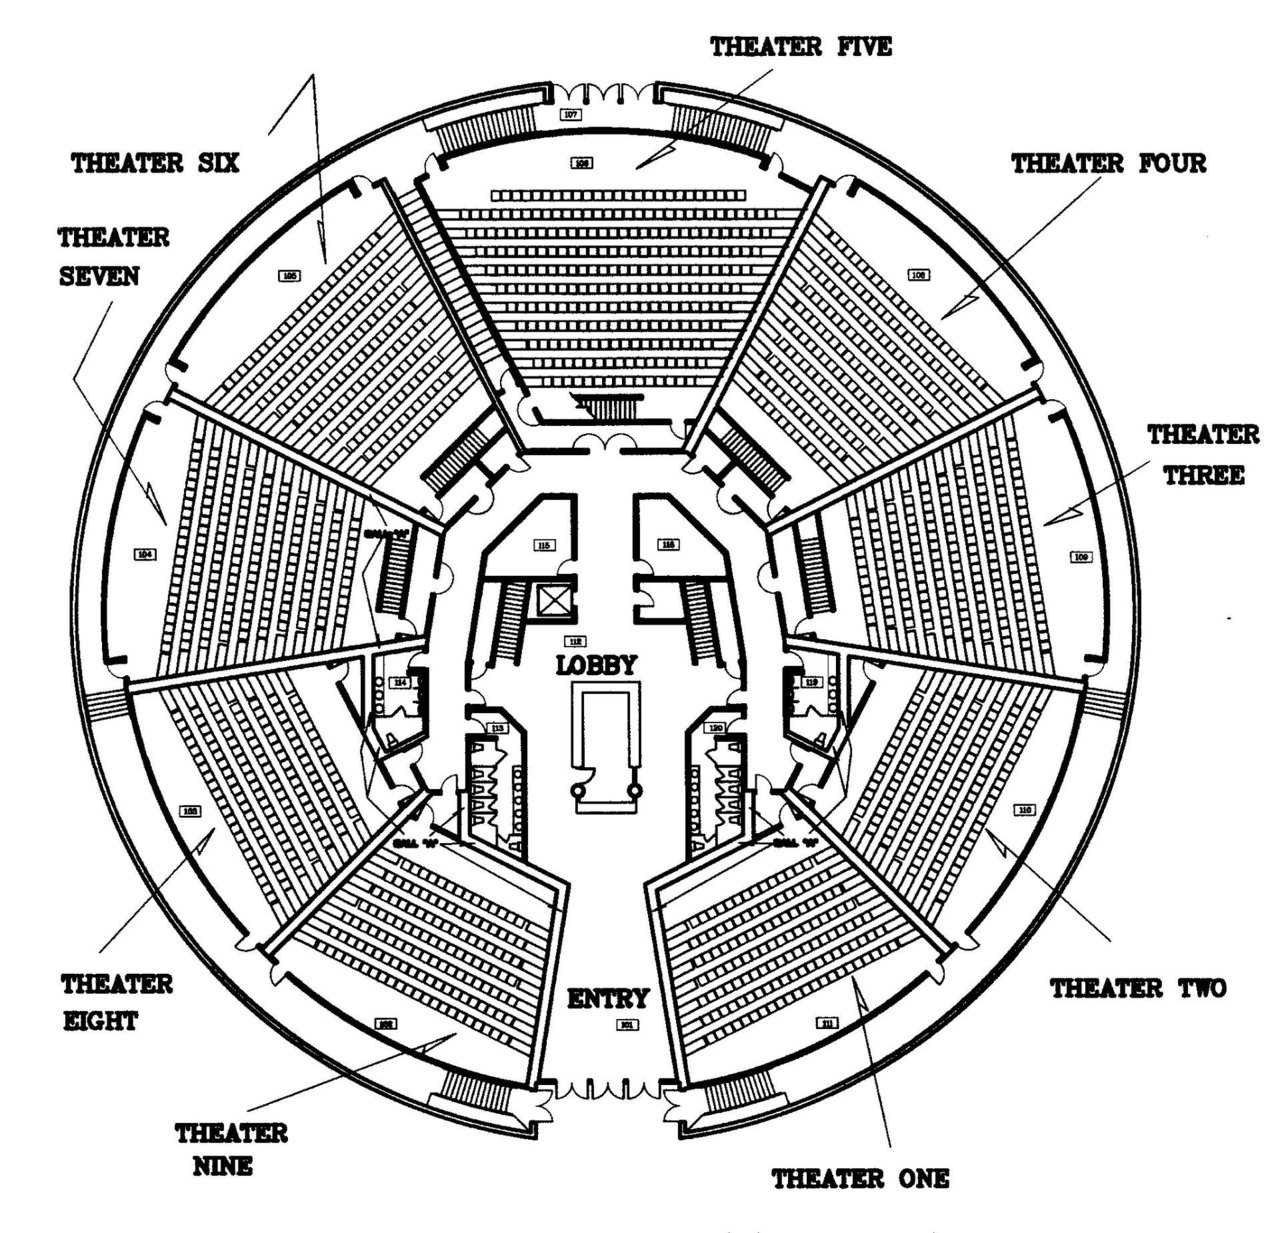 Movie Theatre sample floor plan